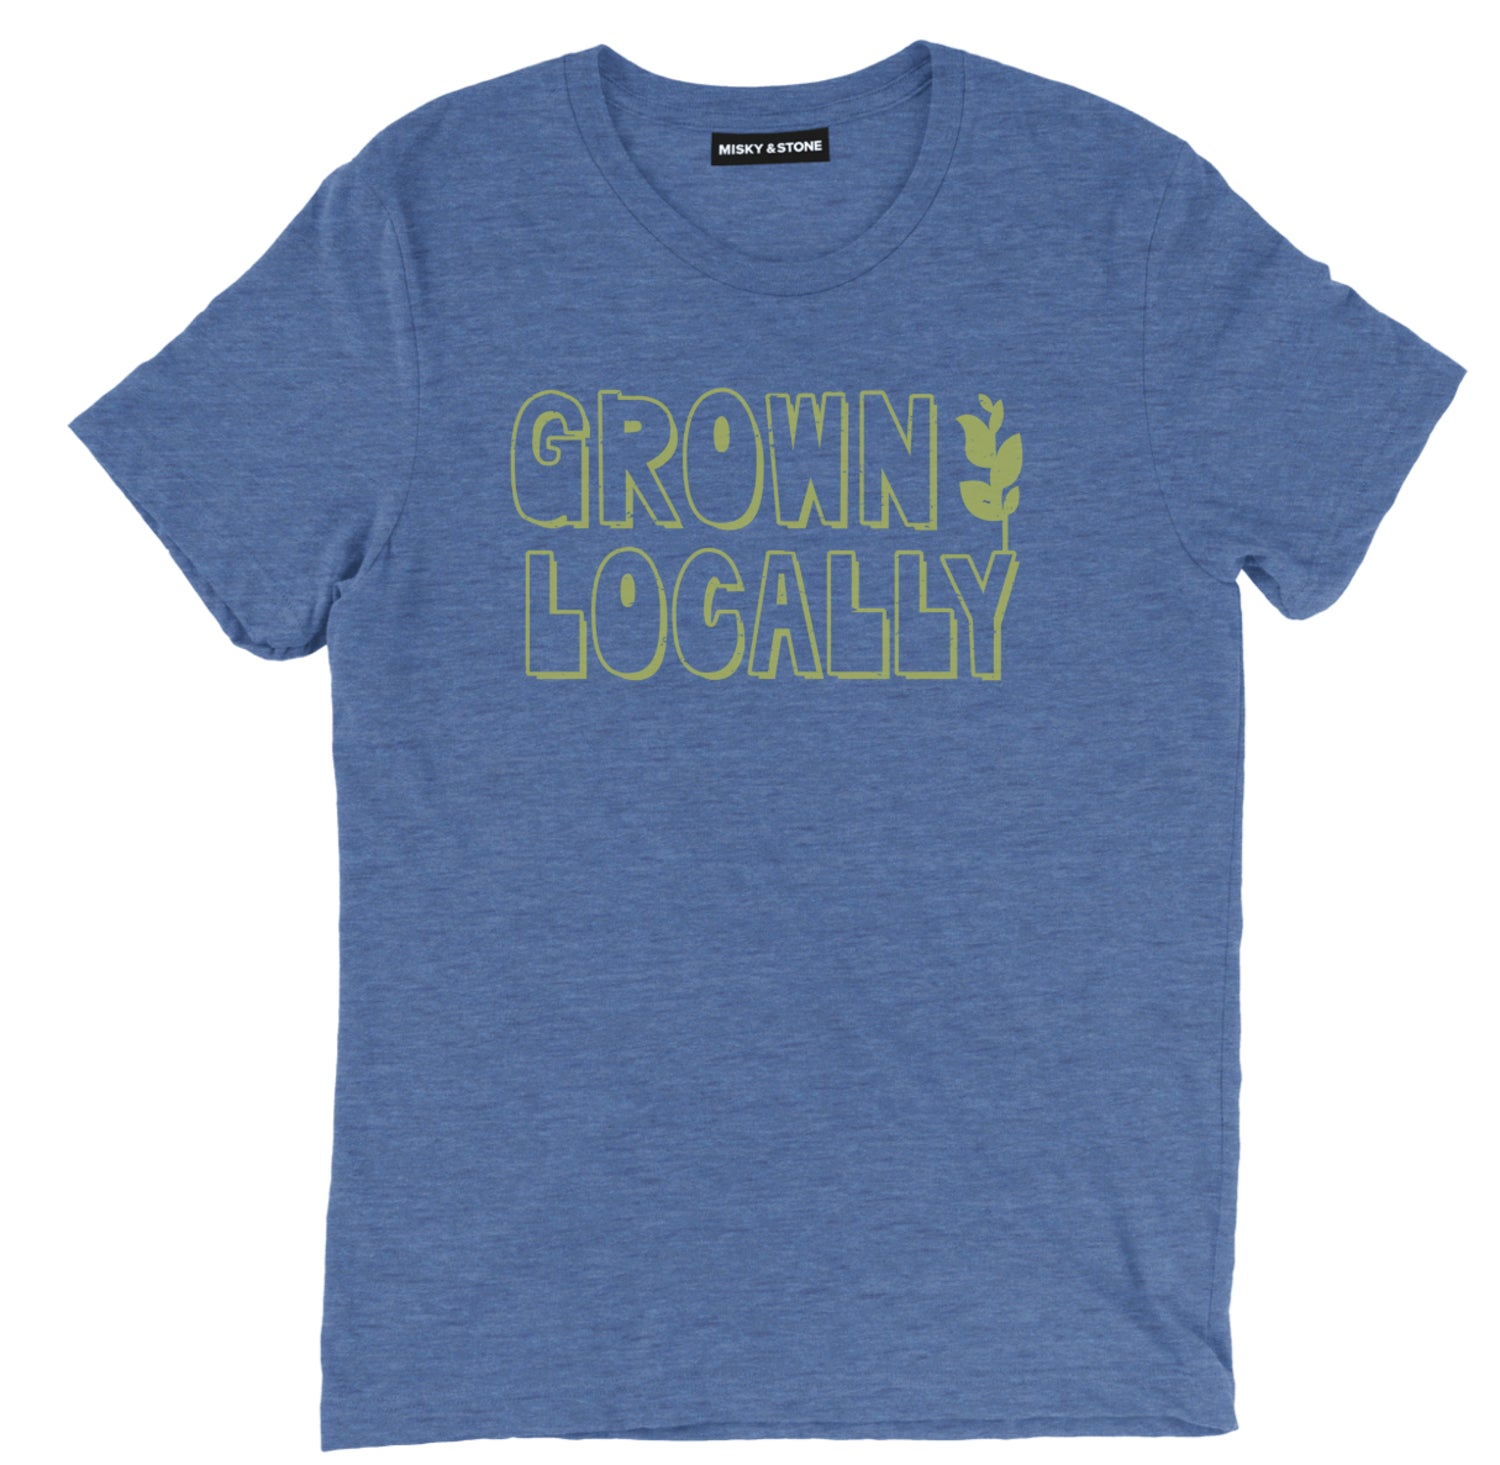 Grown Locally Tee